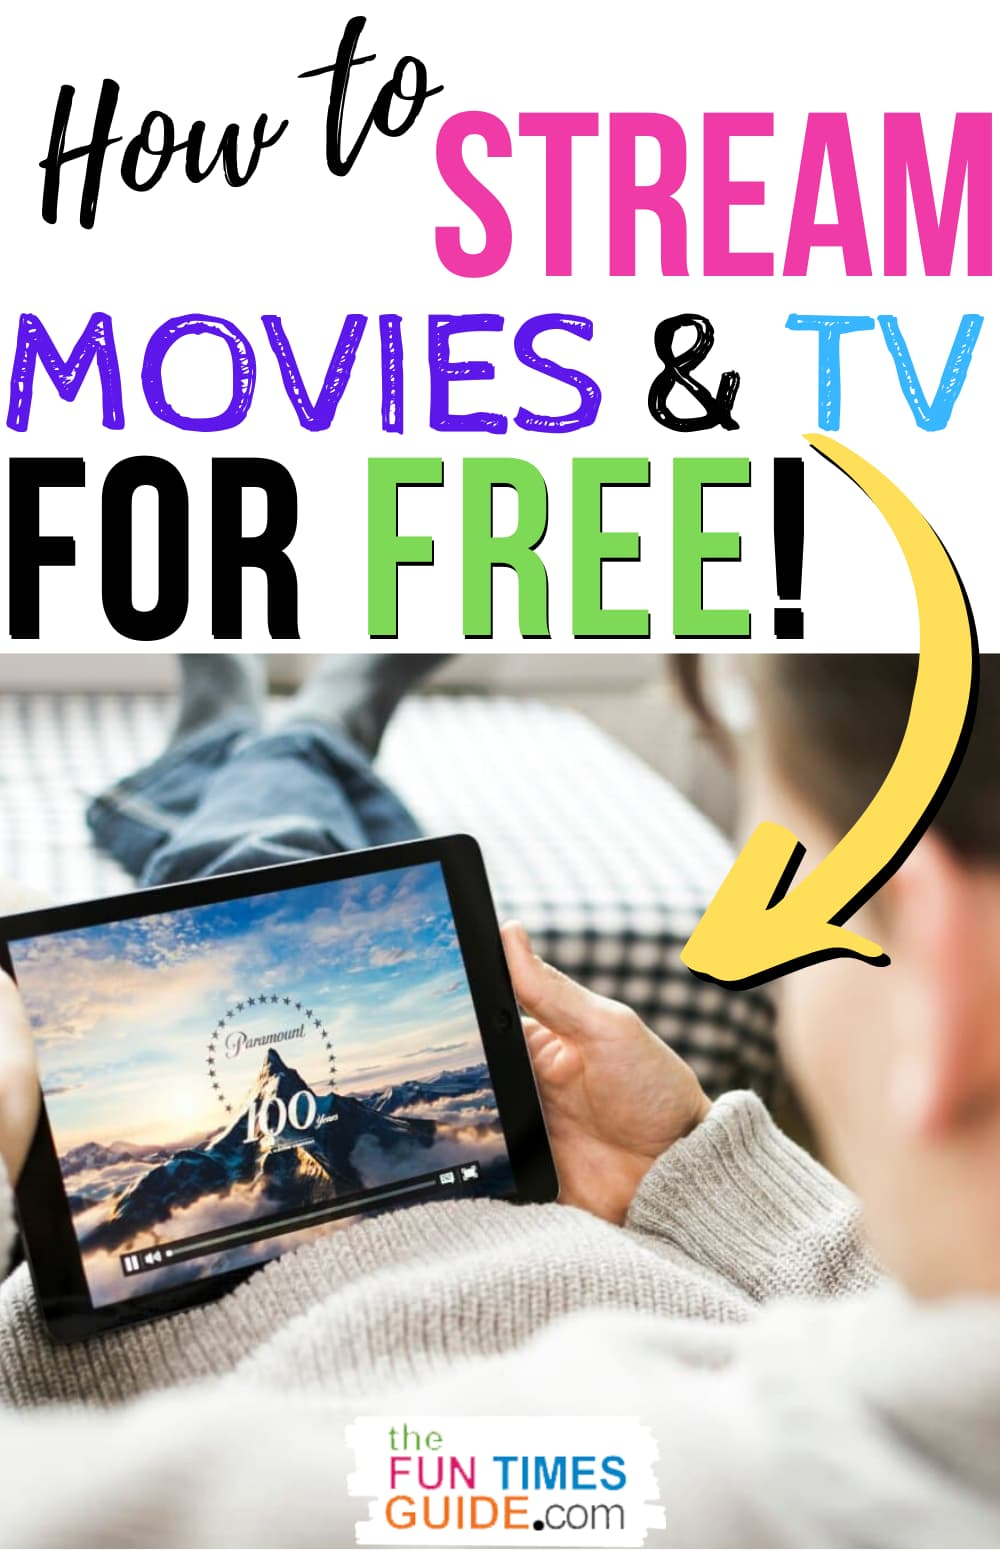 How To Get Rid Of Cable And Watch TV Online Free! (11 Free Online Movie Streaming Sites)